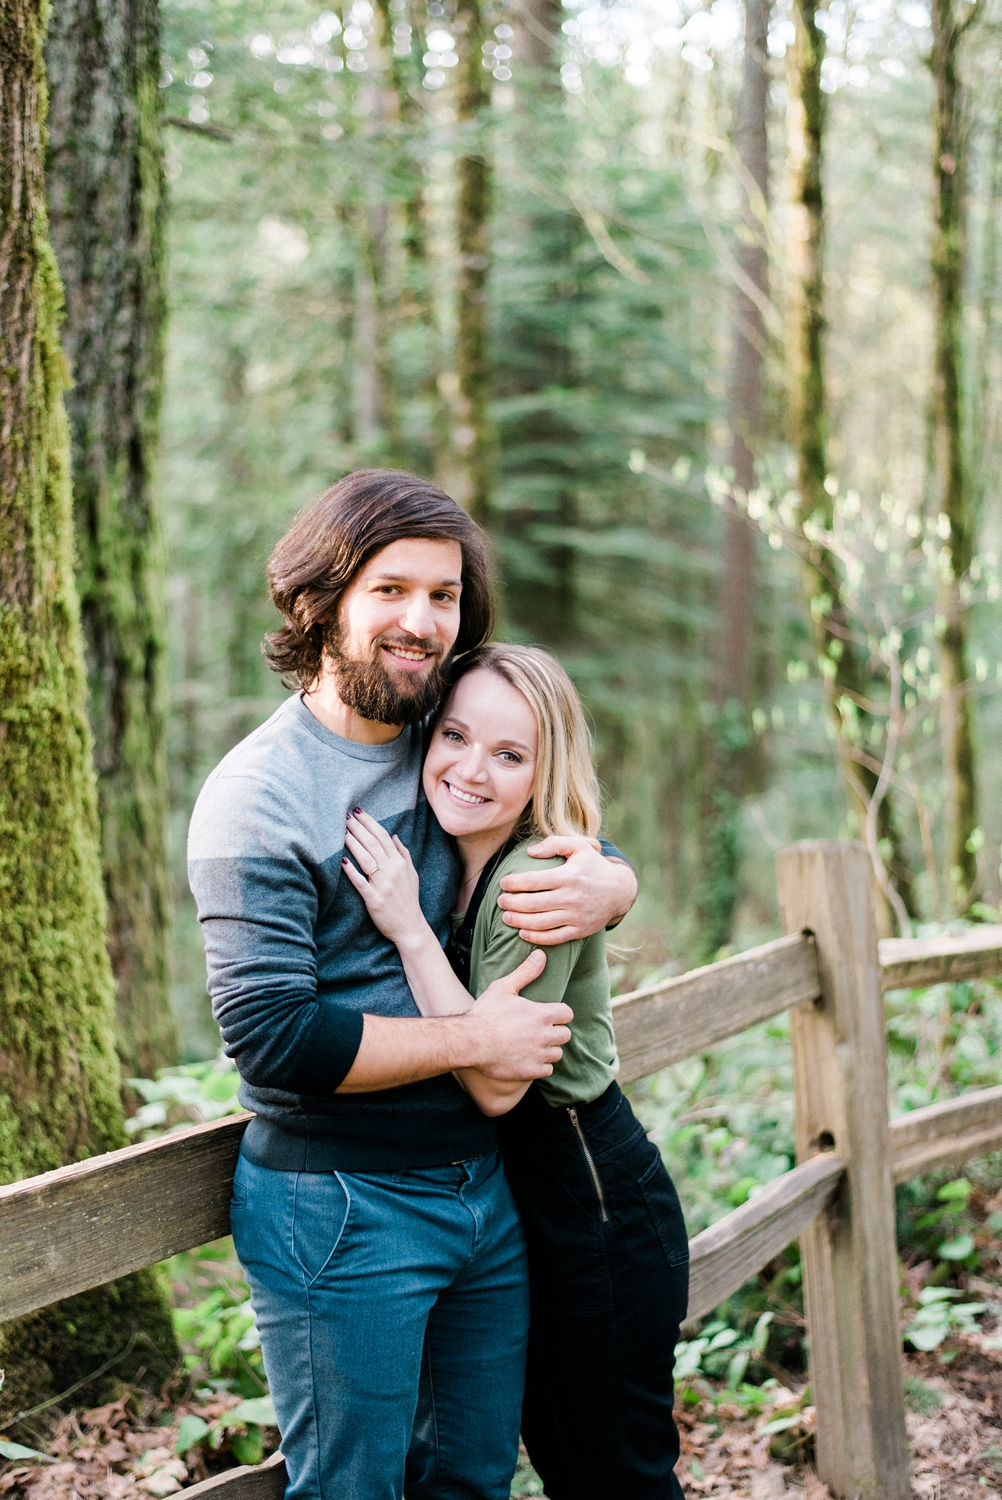 washington-park-portland-engagement-photos-hoyt-arboretum-shelley-marie-photo-136_cr.jpg